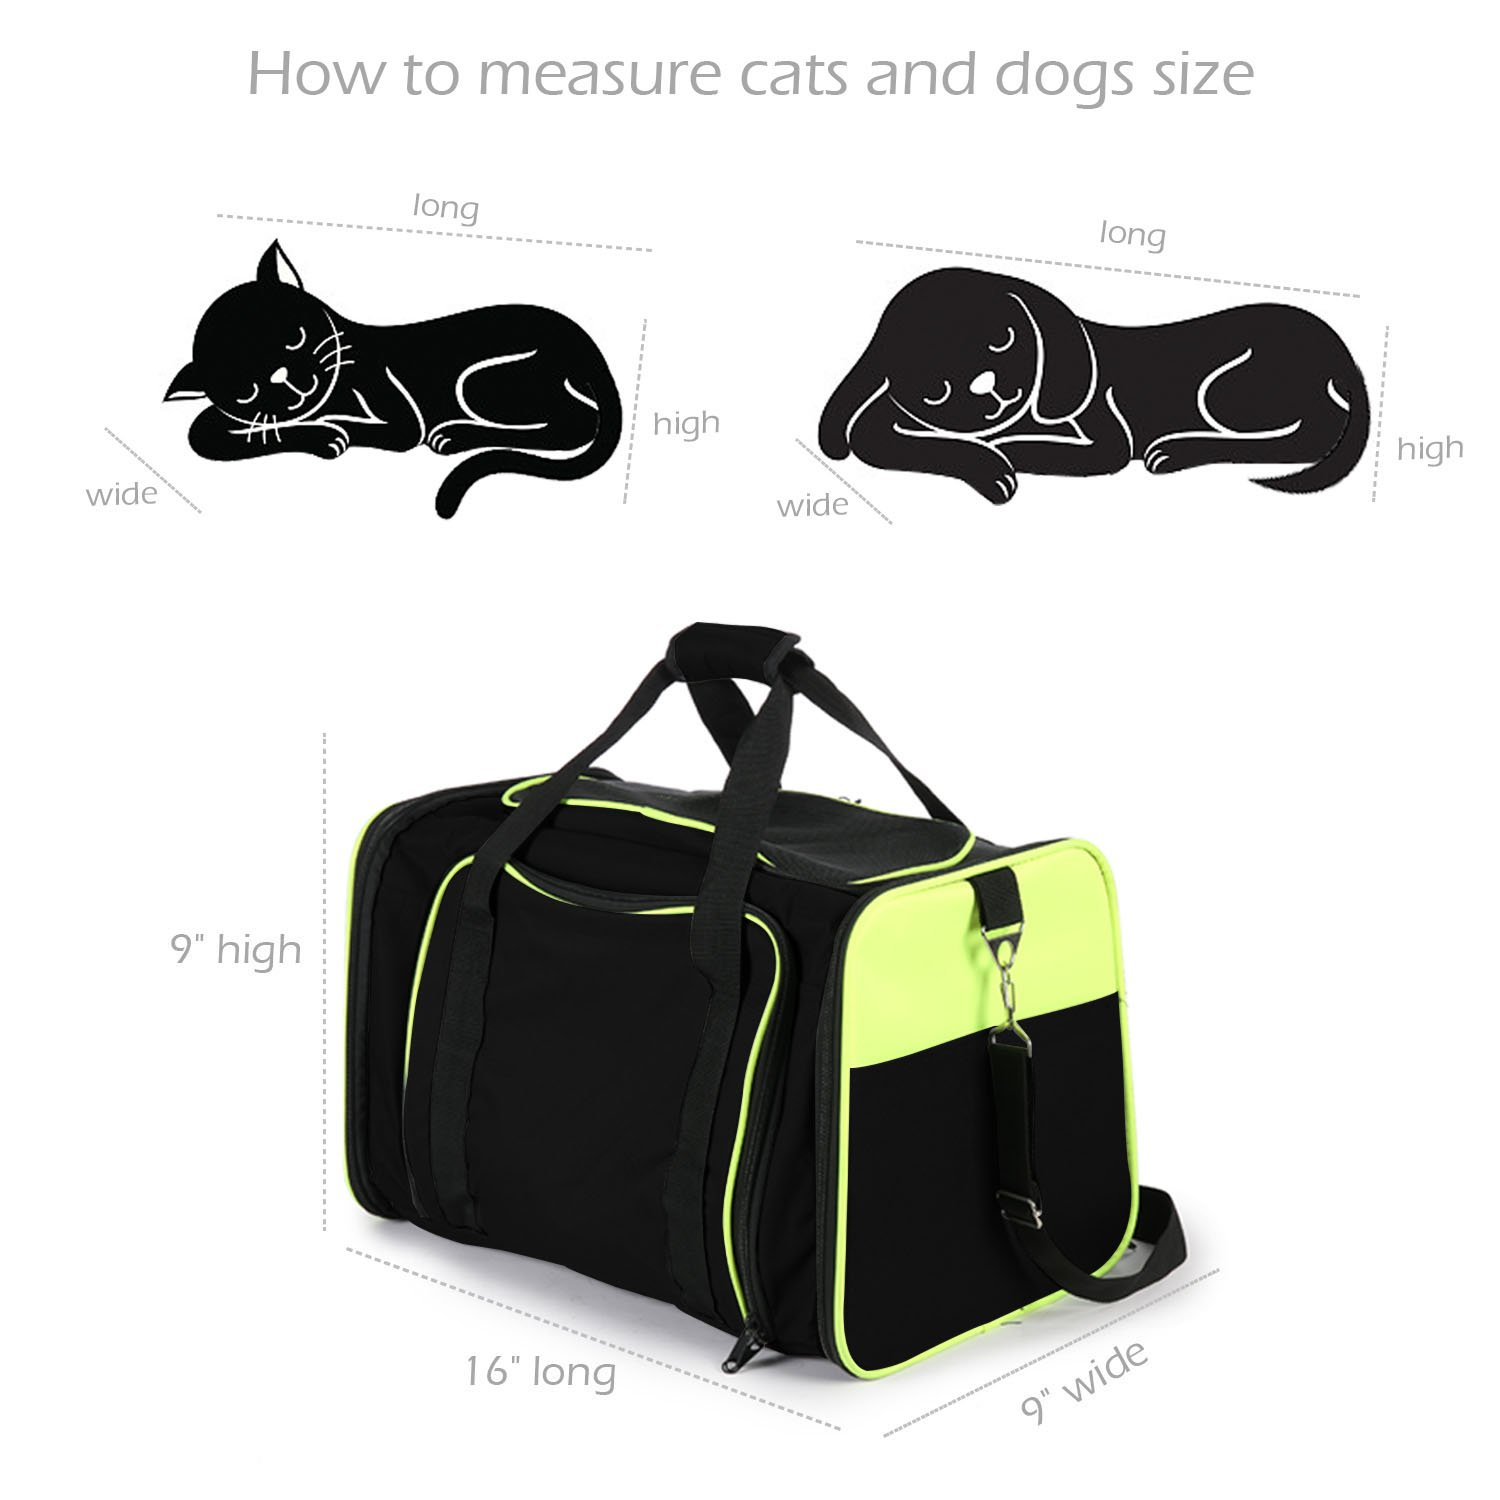 Jespet Expandable Airline Approved Pet Carrier with with Fleece Mat by, Foldable Soft Sided Travel Dog Carrier for Cats Kitten Puppy (16'' L x 9'' W x 9'' H, Black + Neon Green) by Jespet (Image #5)